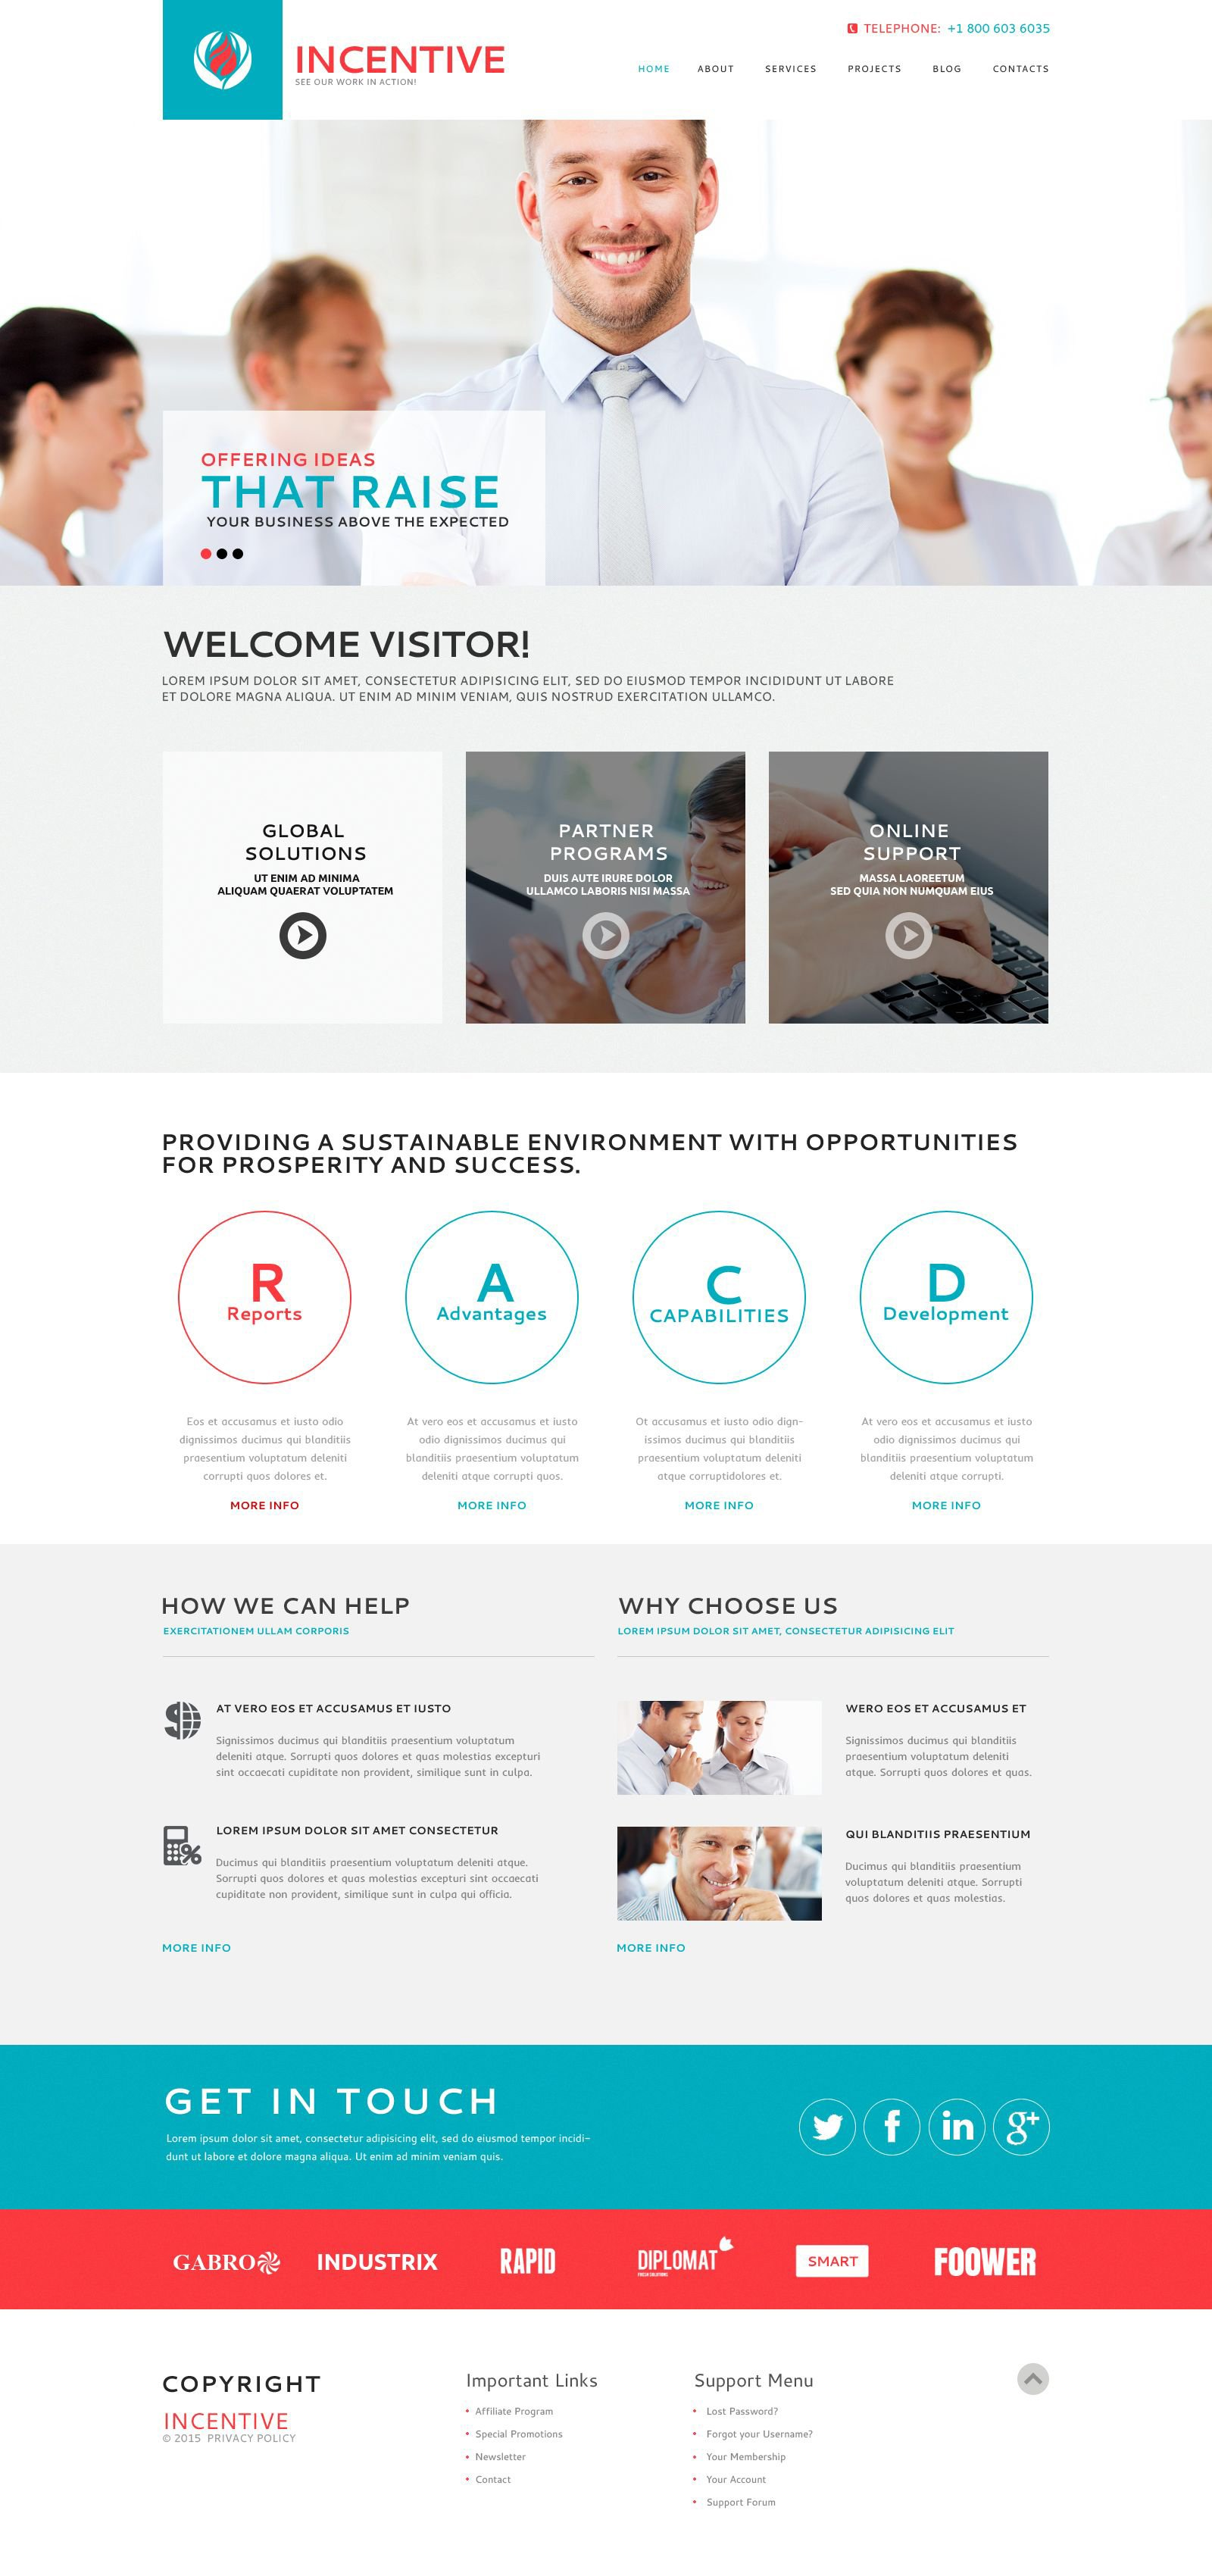 The Inventive Business WordPress Design 53366, one of the best WordPress themes of its kind (business, most popular), also known as inventive business WordPress template, success company WordPress template, enterprise solution WordPress template, business WordPress template, industry WordPress template, technical WordPress template, clients WordPress template, customer support WordPress template, automate WordPress template, flow WordPress template, services WordPress template, plug-in WordPress template, flex WordPress template, profile WordPress template, principles WordPress template, web products WordPress template, technology system and related with inventive business, success company, enterprise solution, business, industry, technical, clients, customer support, automate, flow, services, plug-in, flex, profile, principles, web products, technology system, etc.